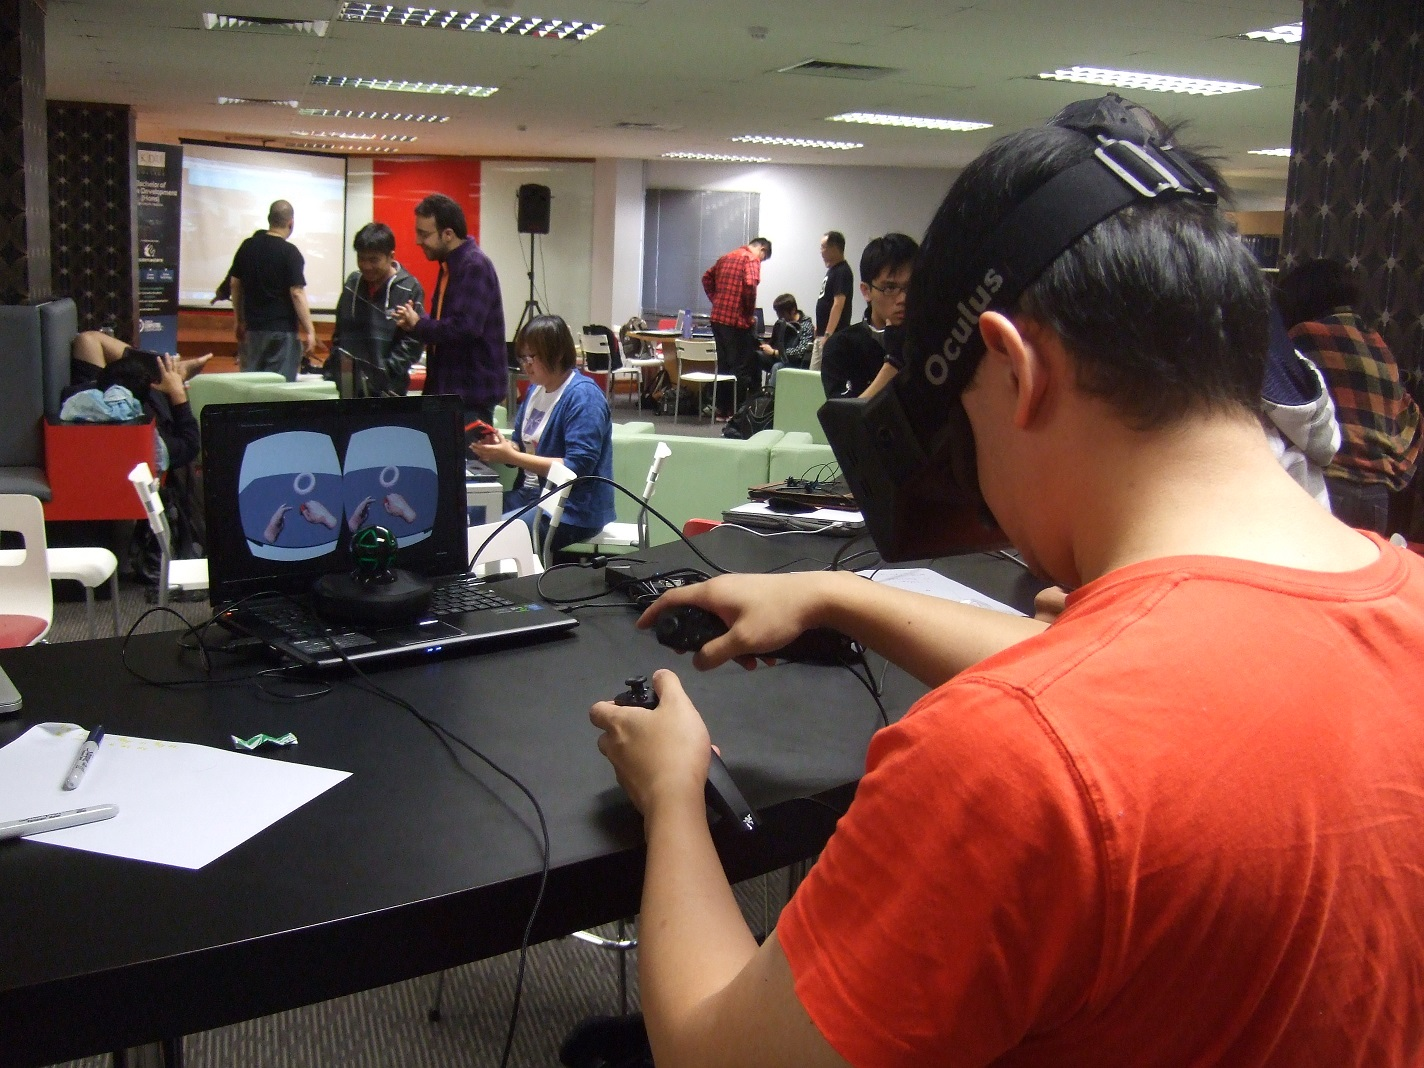 Yang playing the final game